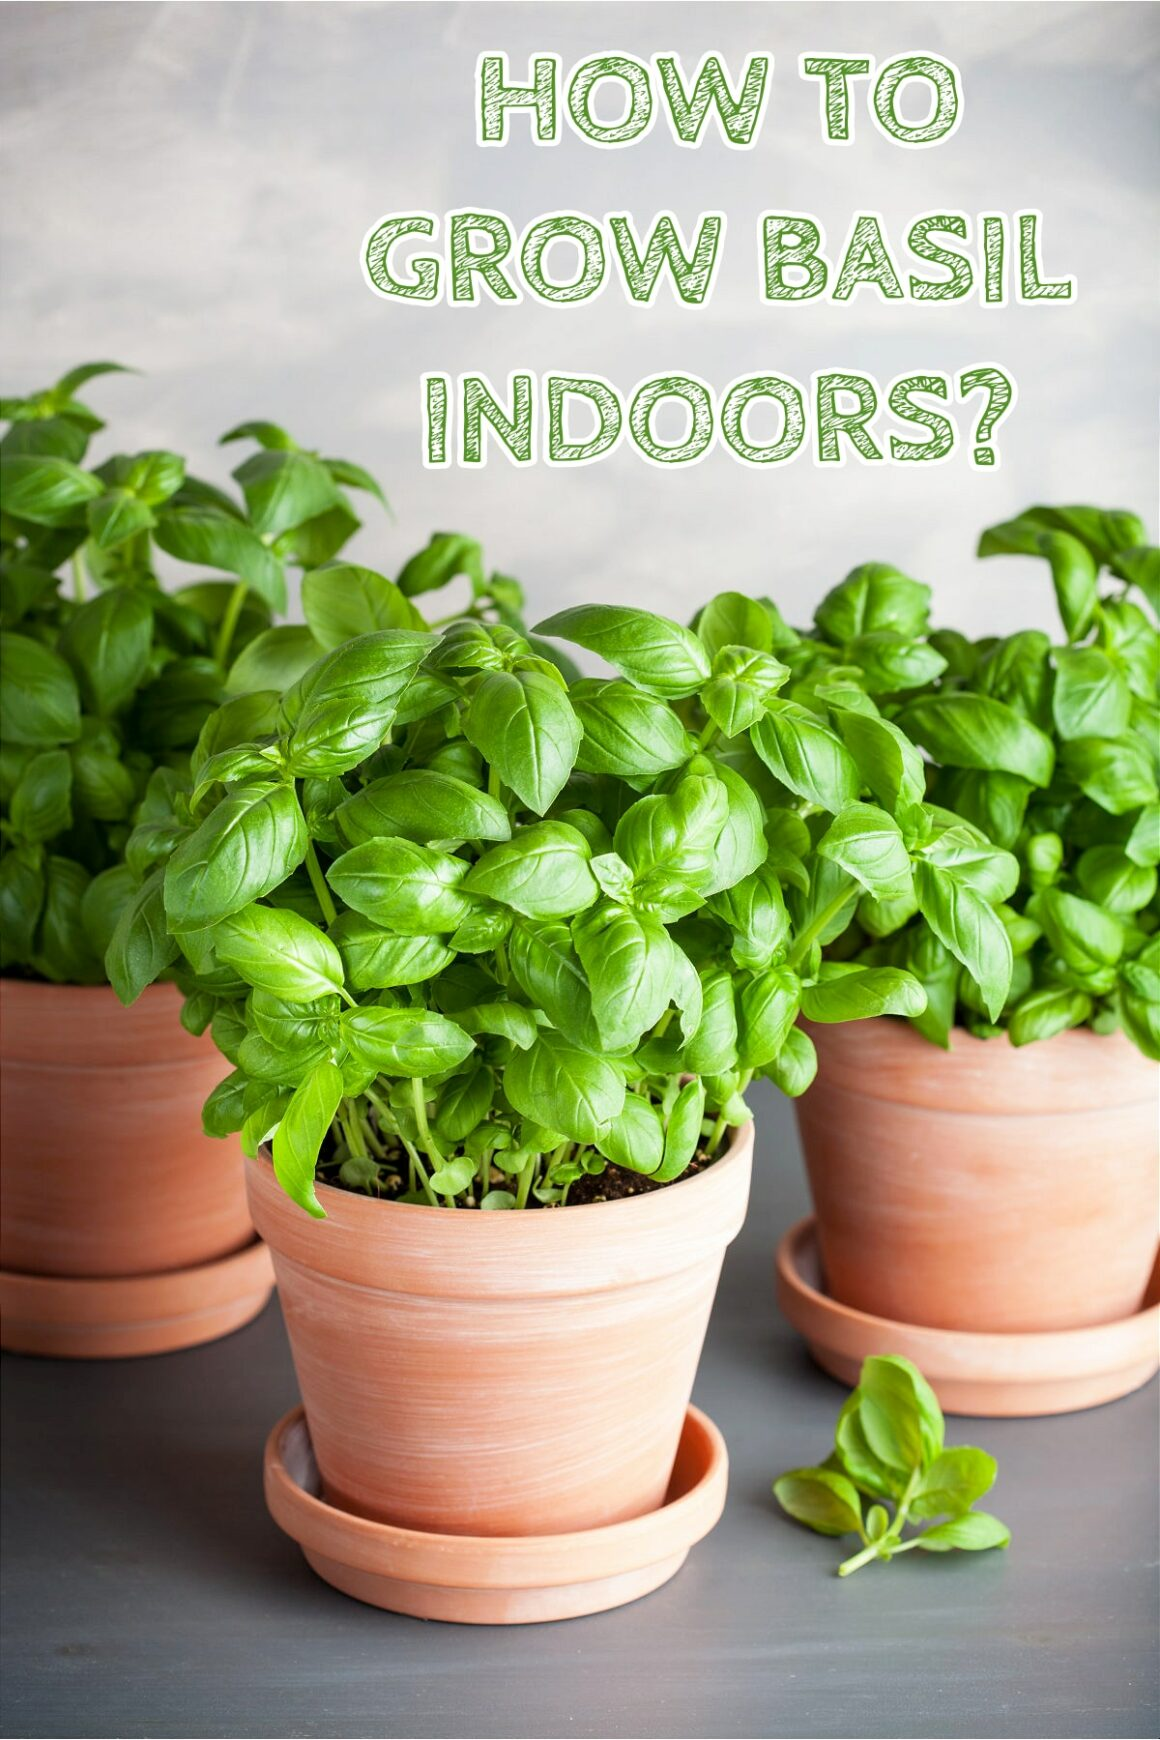 How To Grow Basil Indoors?